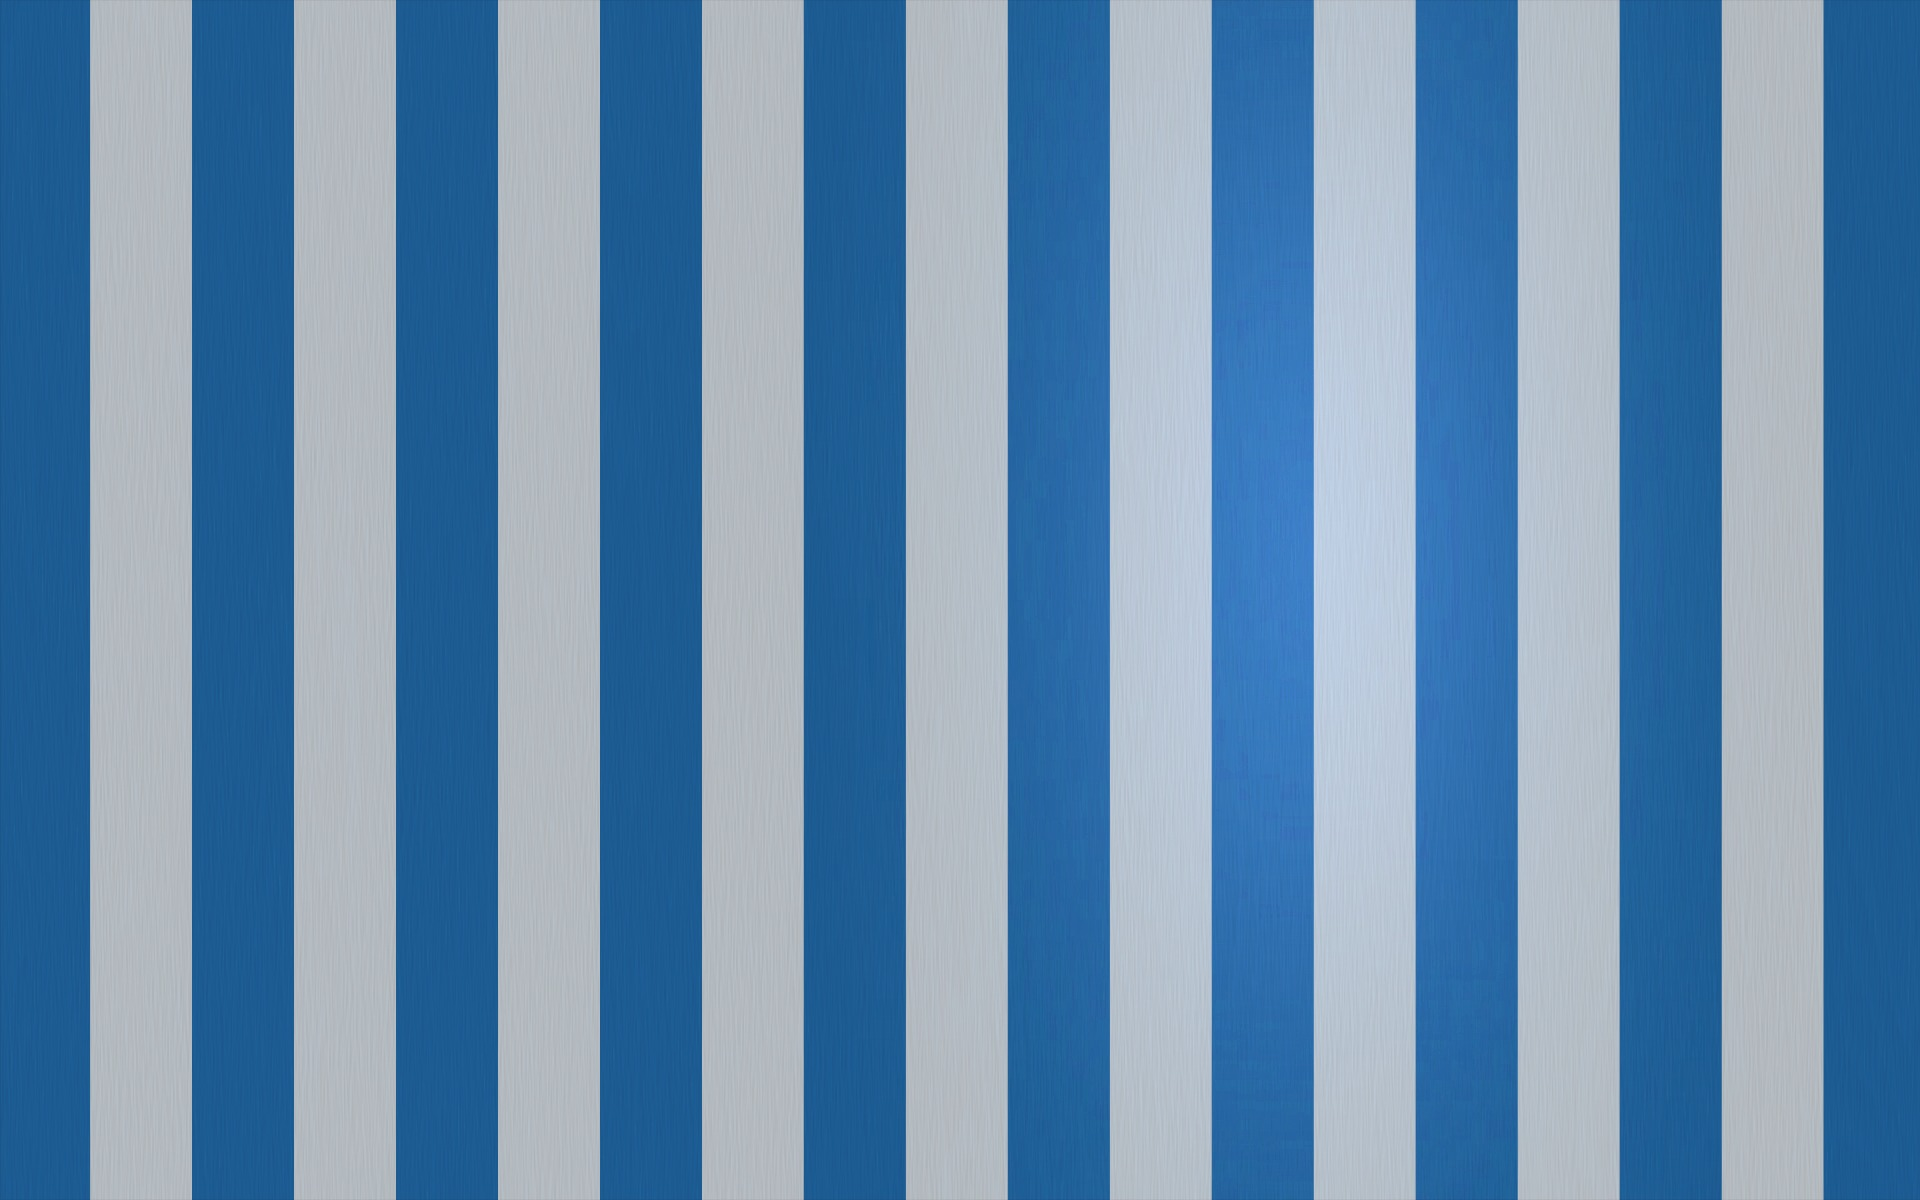 Stripe Blue Green And White: Blue And White Striped Wallpaper